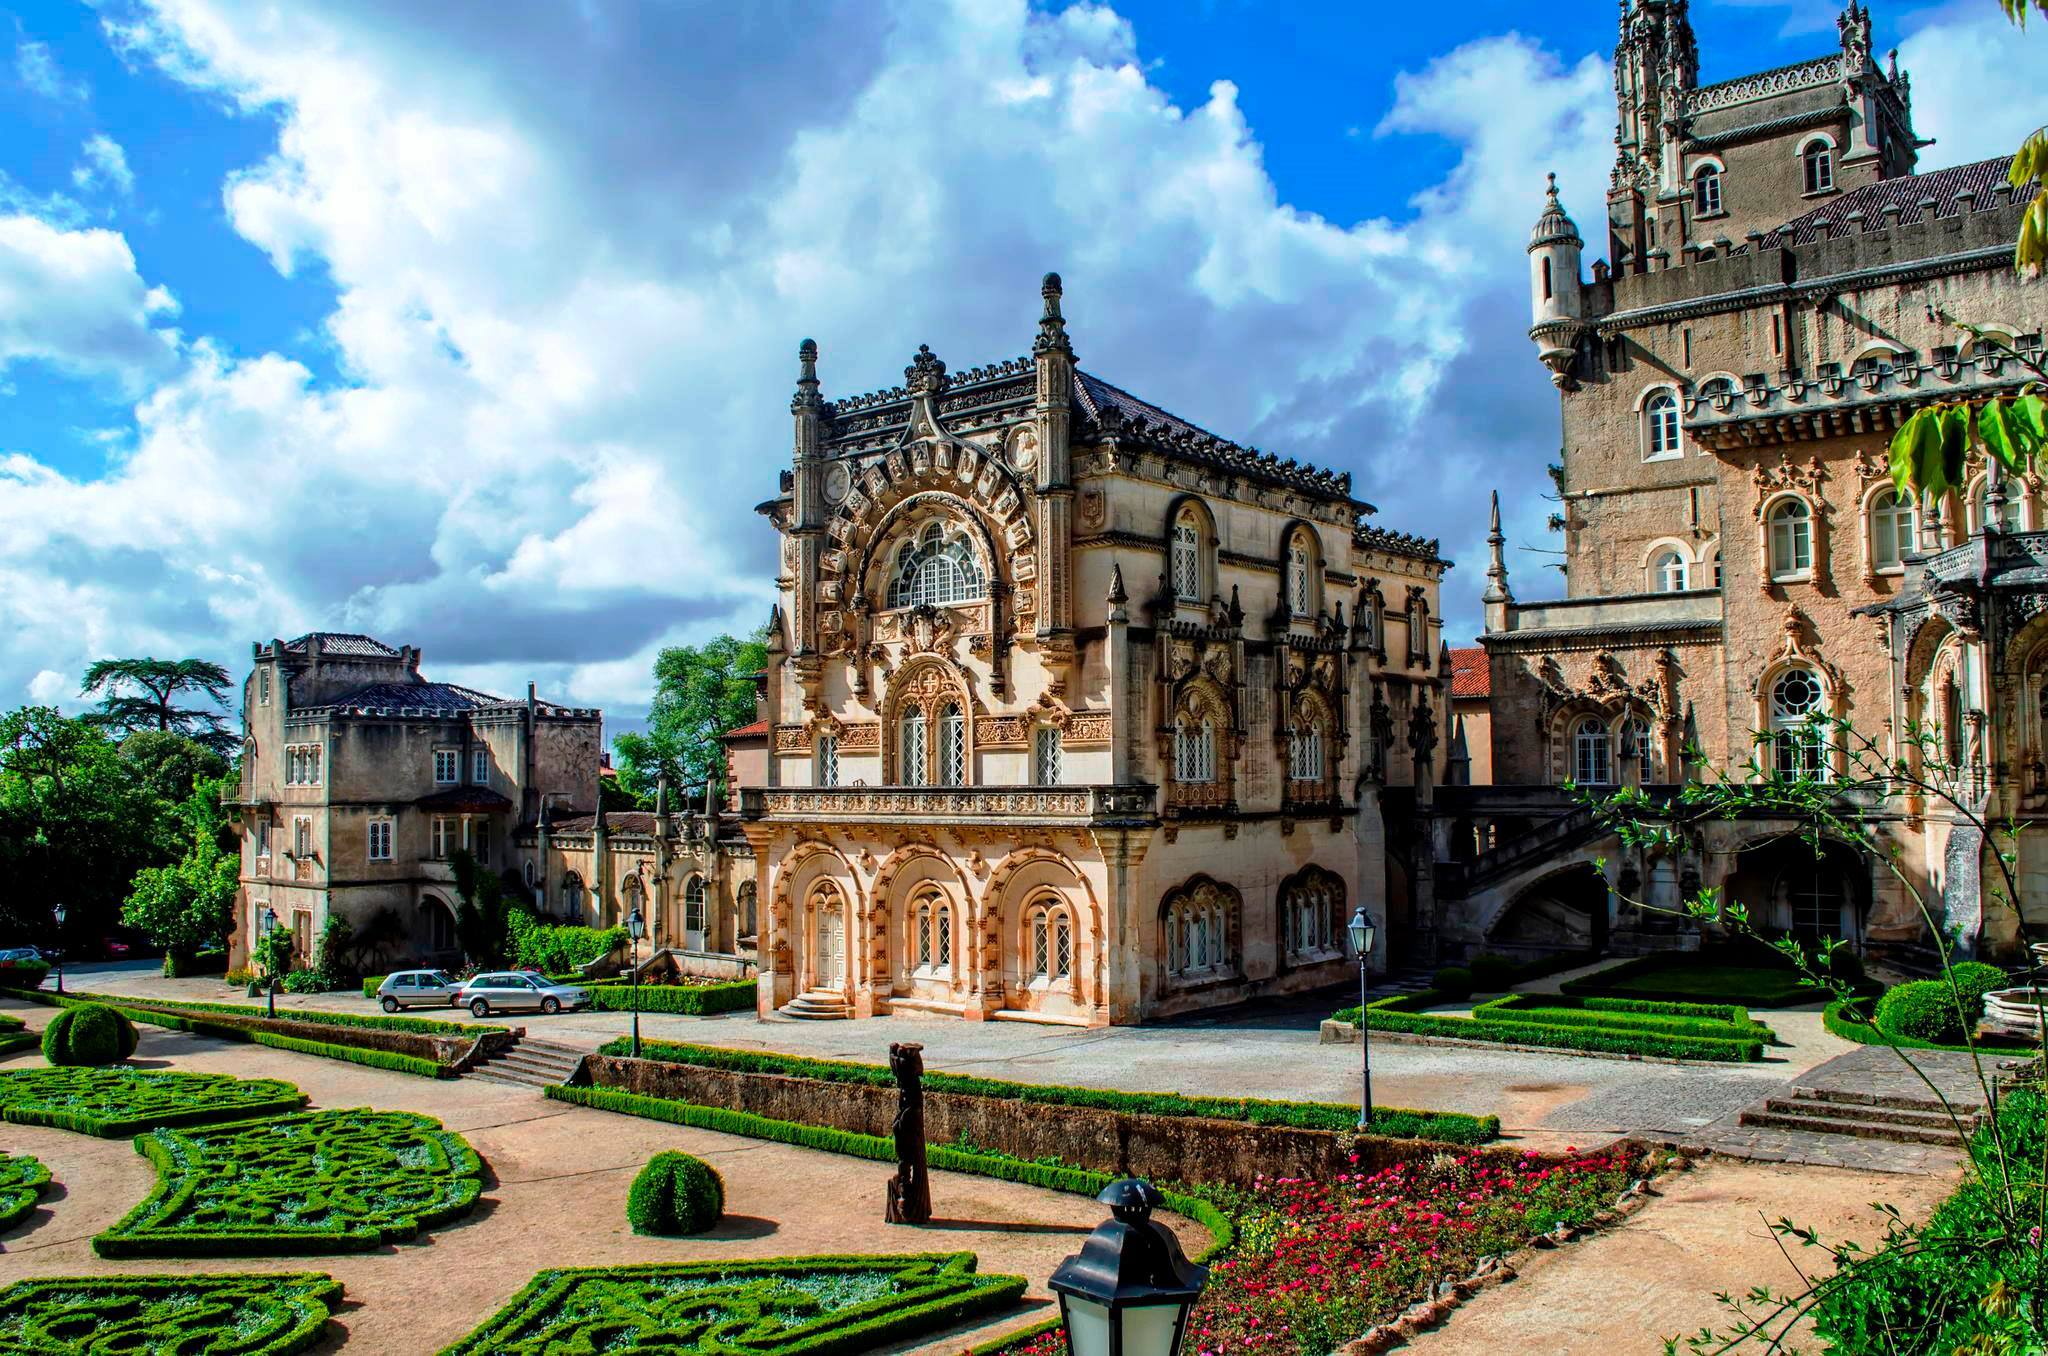 The Bussaco Palace Hotel, in Bussaco National Forest Park